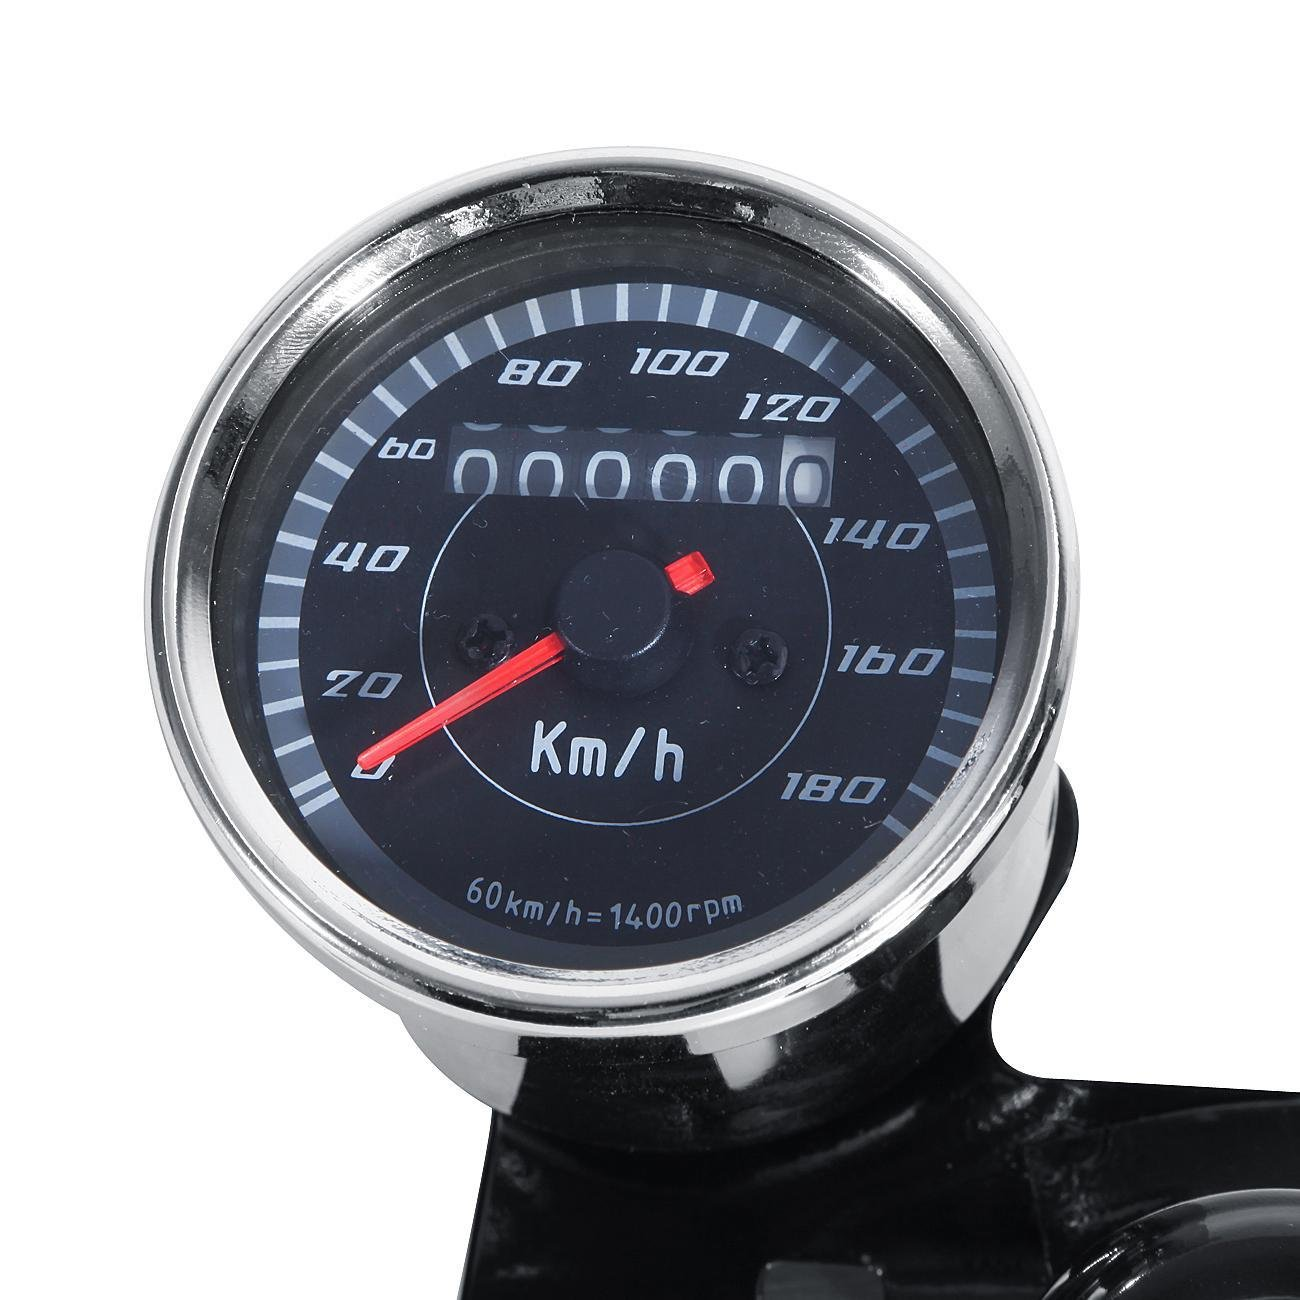 INNOGLOW Motorcycle Backlit Speedometer Tachometer Kit with Bracket,High Capacity Scale,Full-Sweep red Index,0-13000RPM,0-180km/h by INNOGLOW (Image #5)